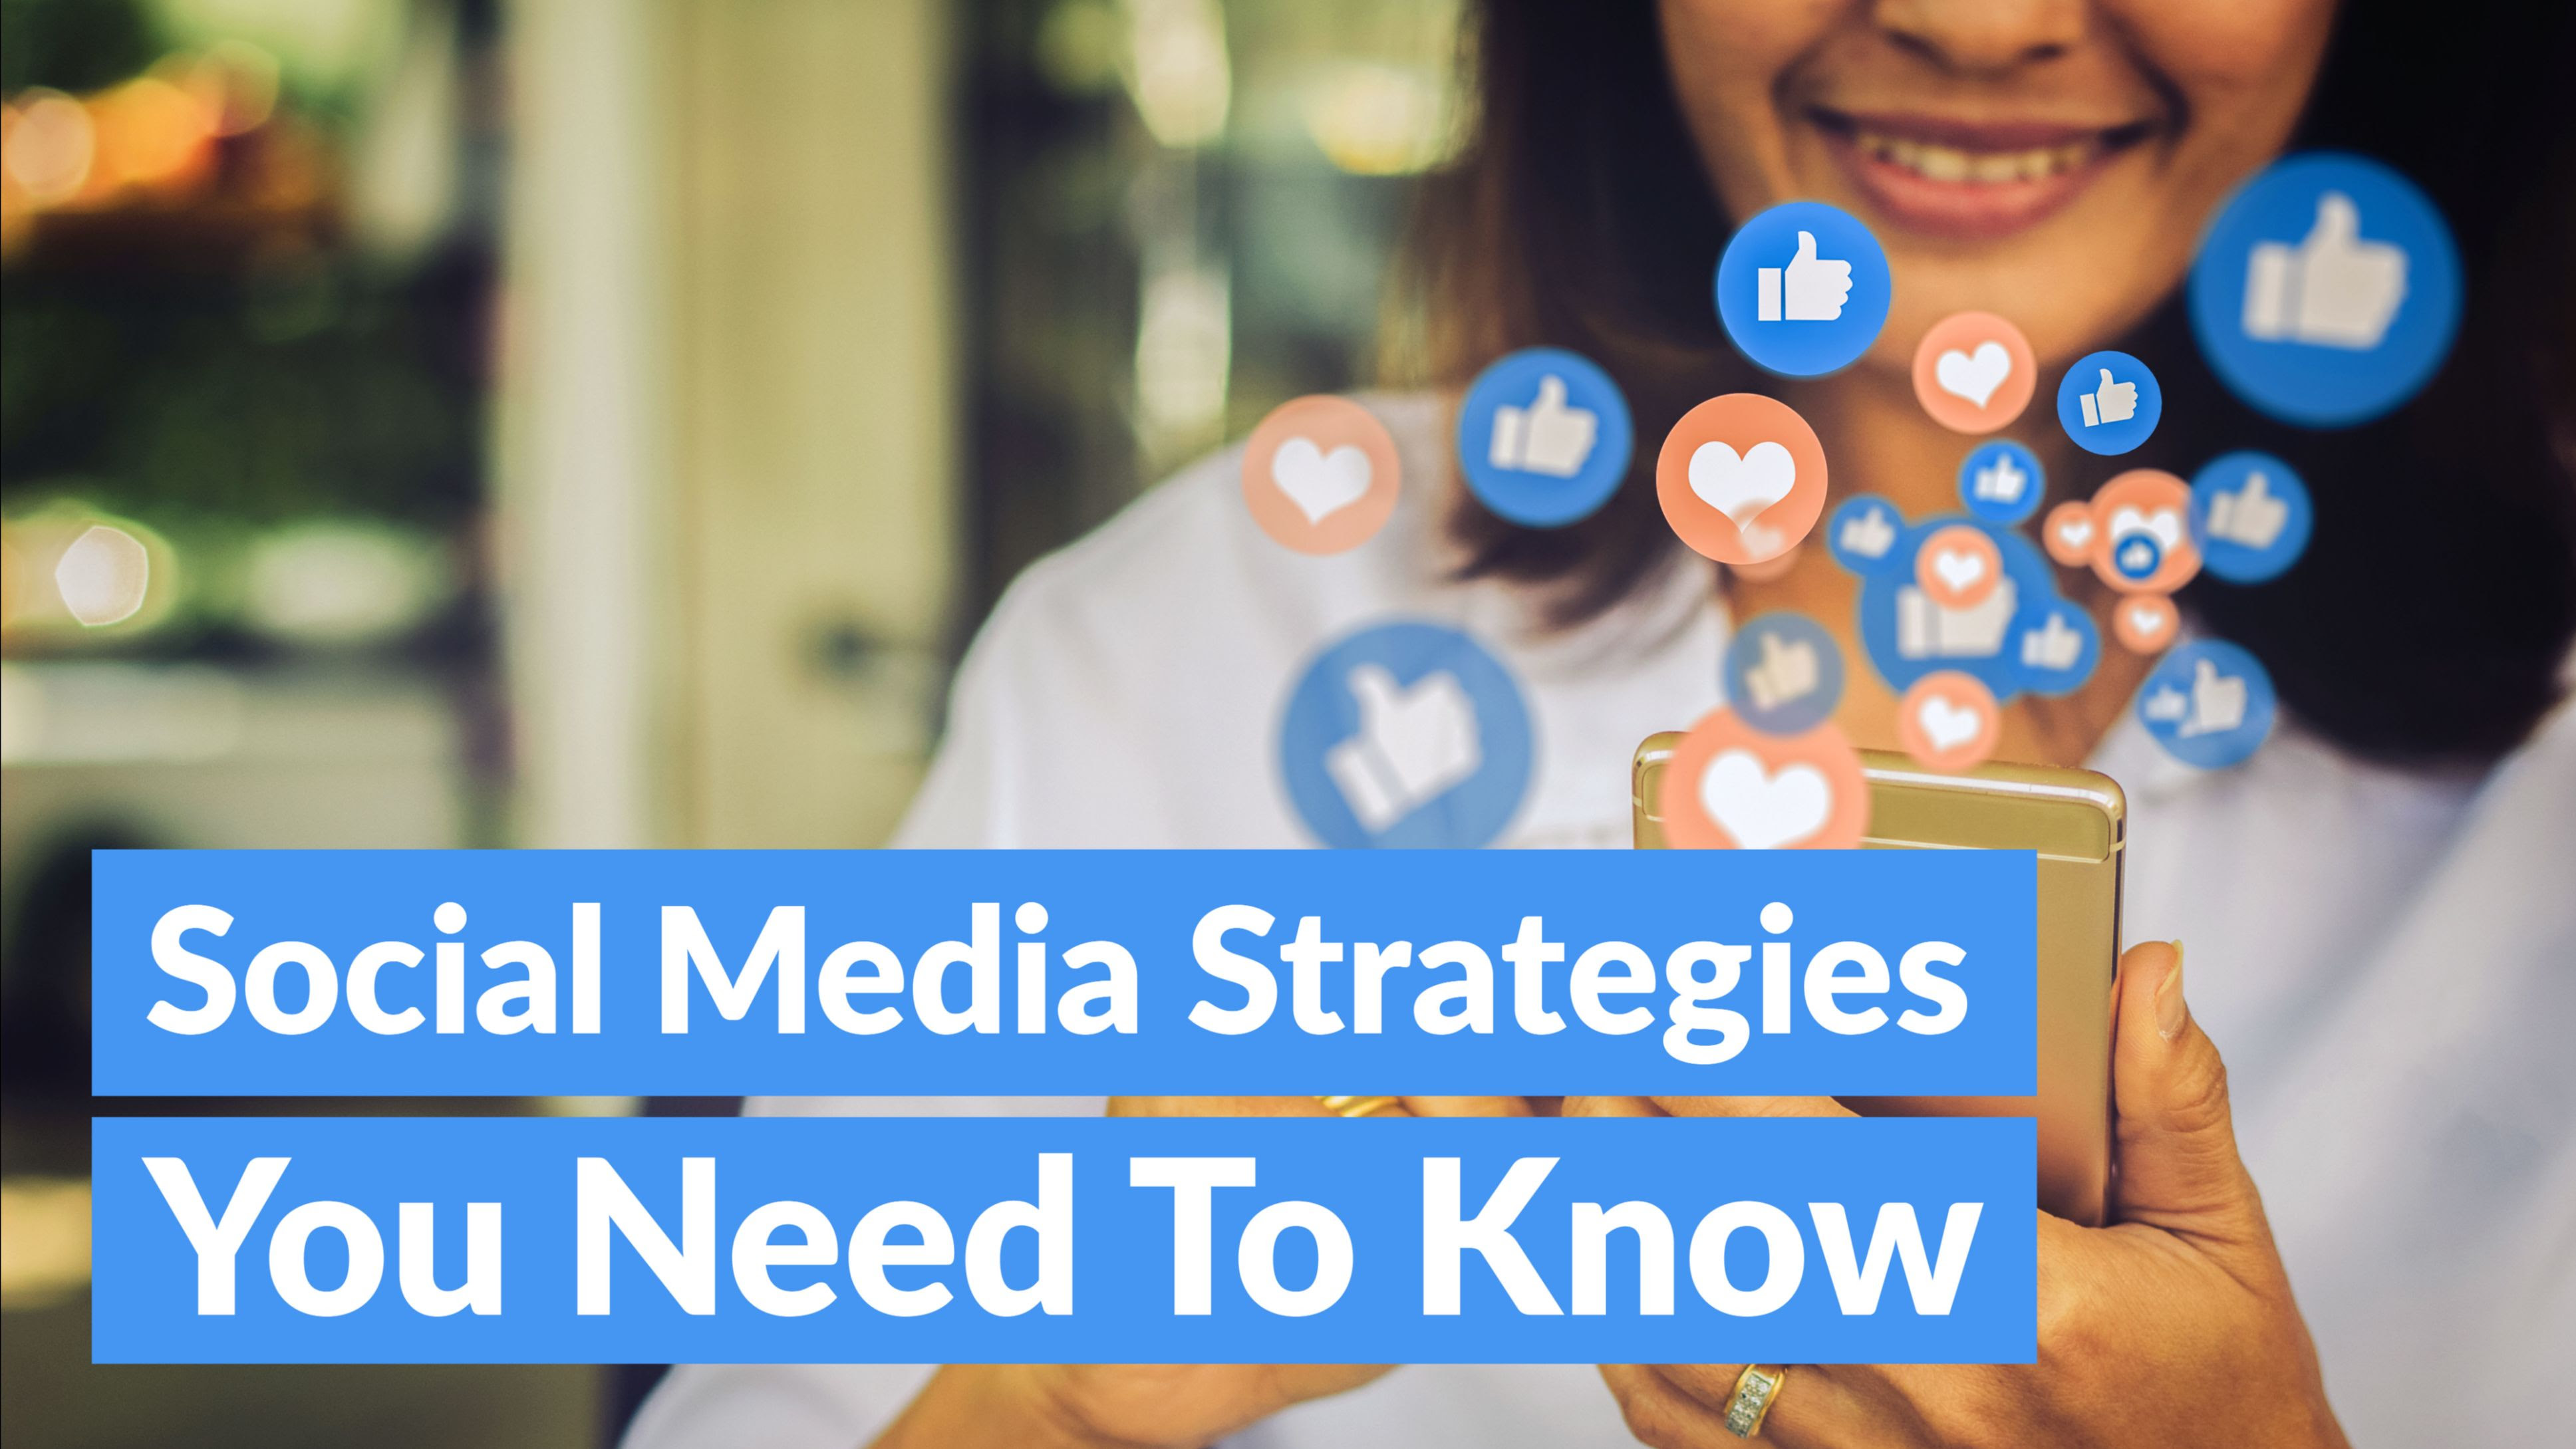 Top 10 Social Media Strategies Your Law Firm Needs to Know